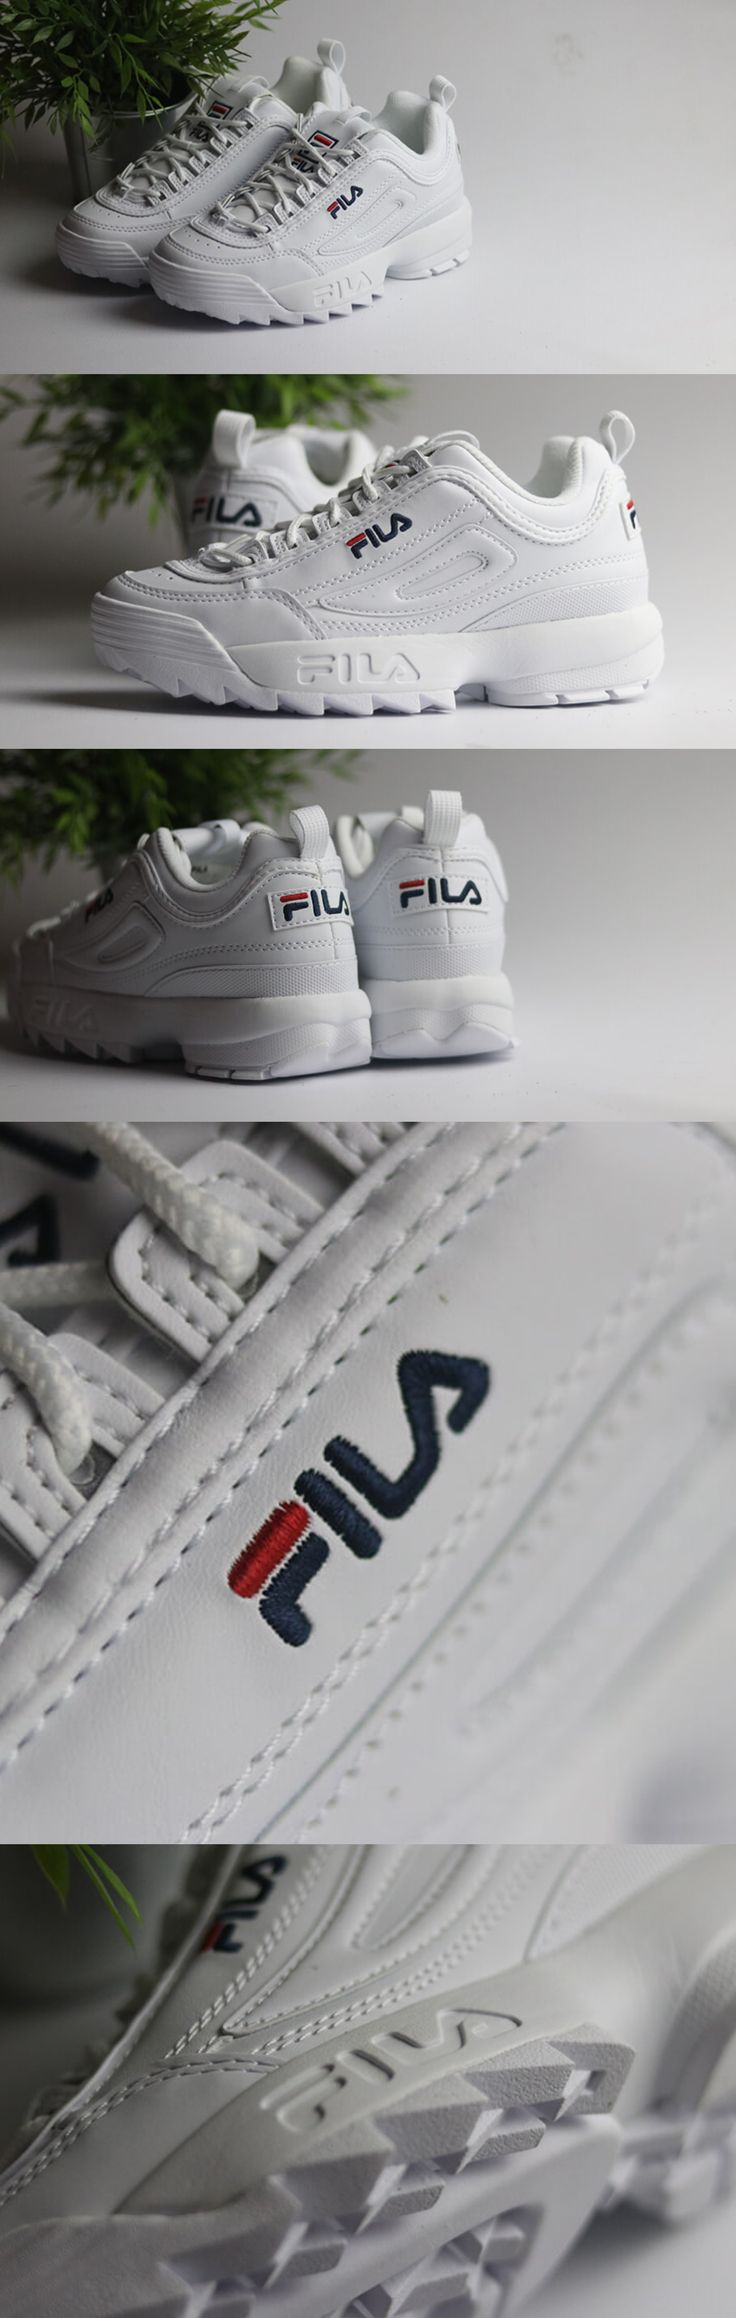 90s are back. #fila DISRUPTOR LOW sneakers for women. Now available in STORM SHOP ® Sneakers & Apparel Madrid